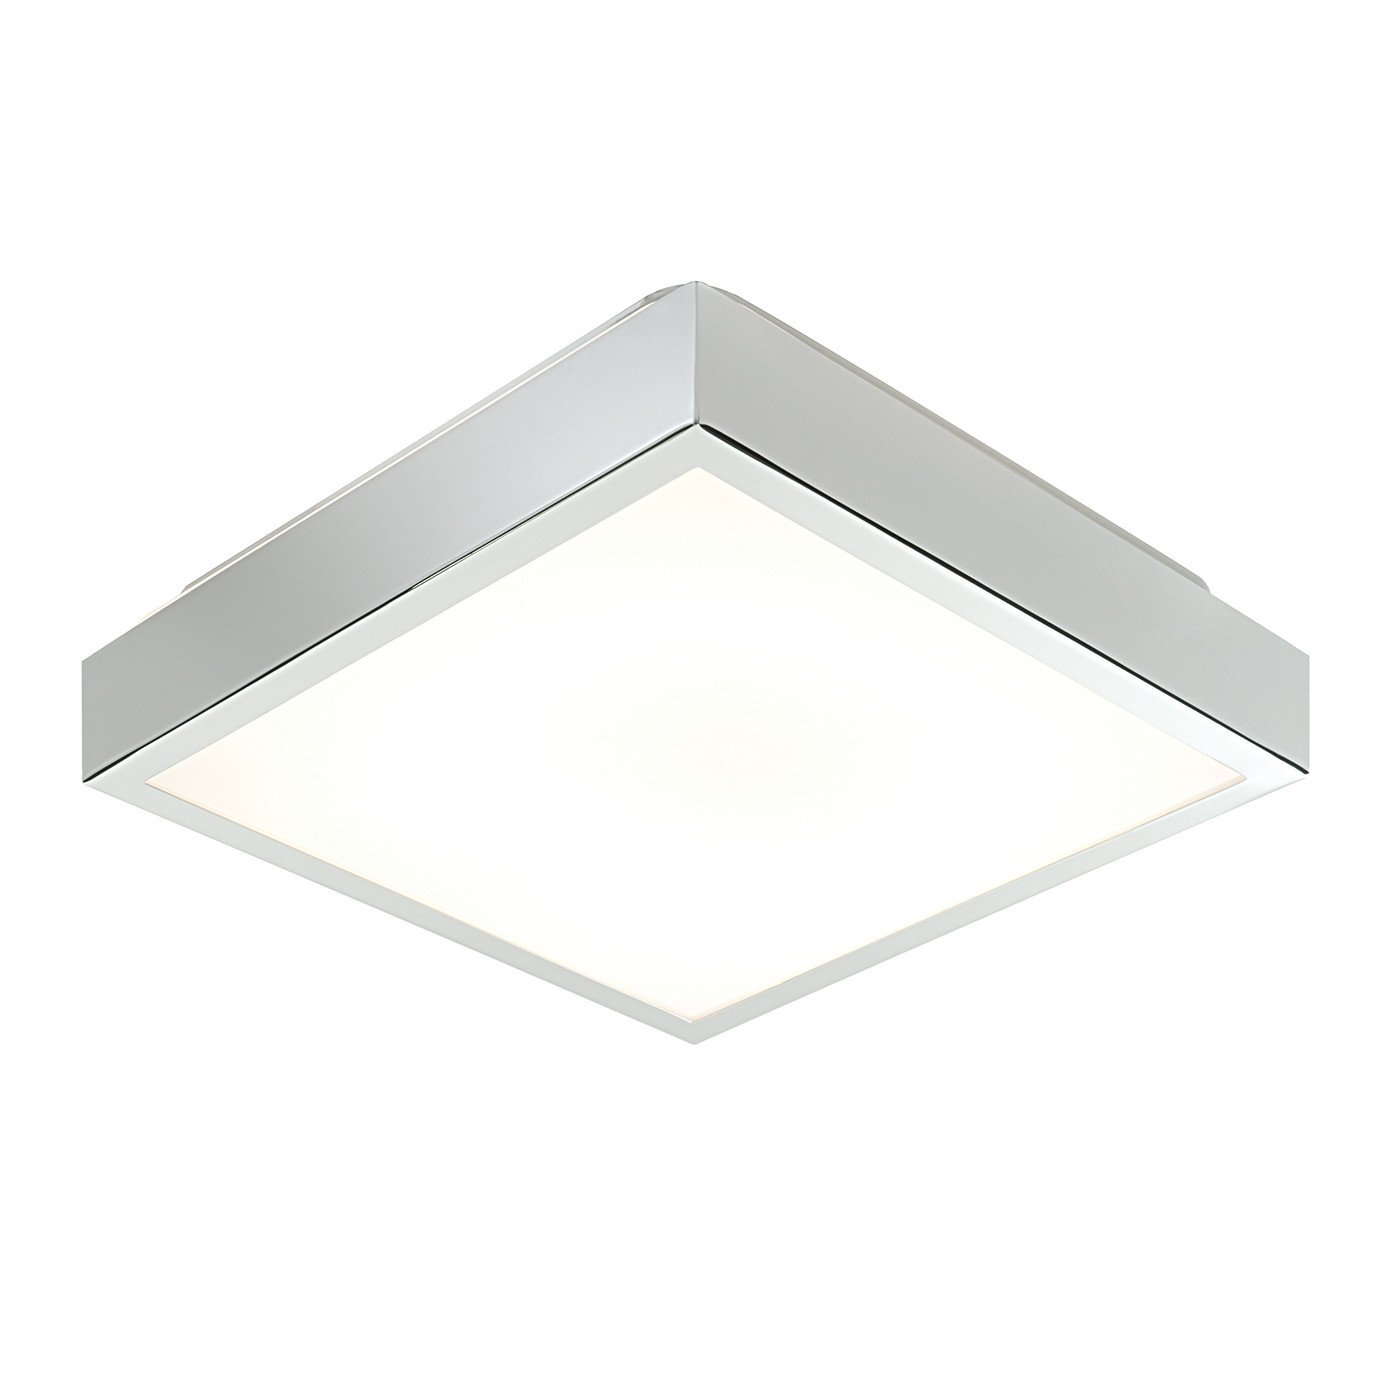 Saxby cubita 28w square 290mm chrome plated hf ip44 flush bathroom saxby cubita 28w square 290mm chrome plated hf ip44 flush bathroom ceiling light amazon kitchen home mozeypictures Image collections